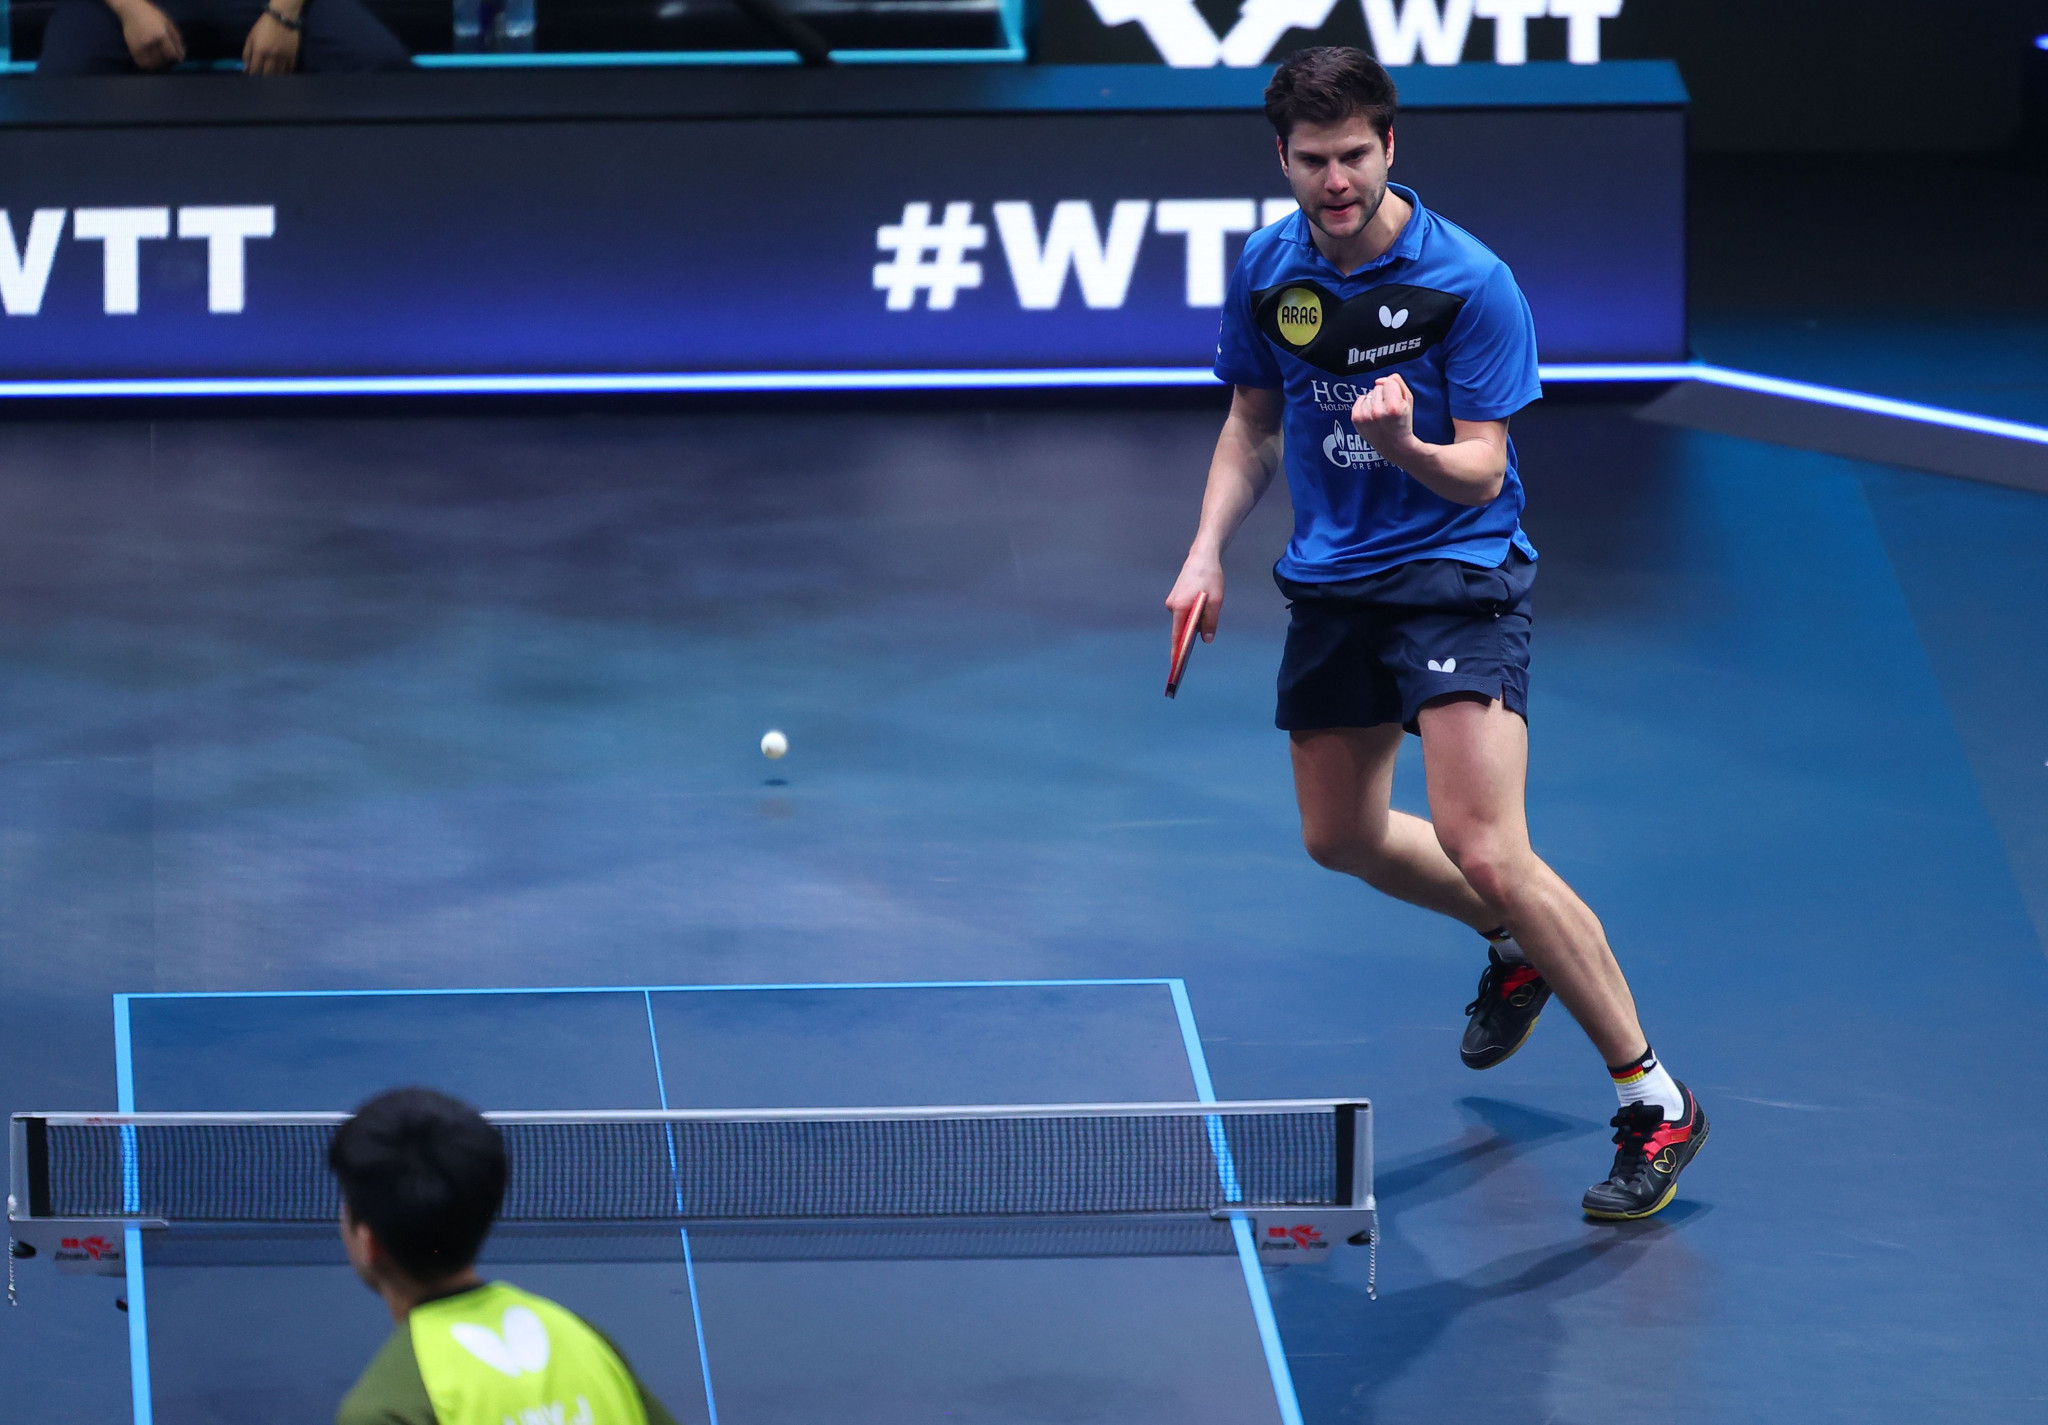 World Table Tennis, which is responsible for the ITTF's commercial and event business side, will be one of the entities Dainton leads in his new role ©Getty Images